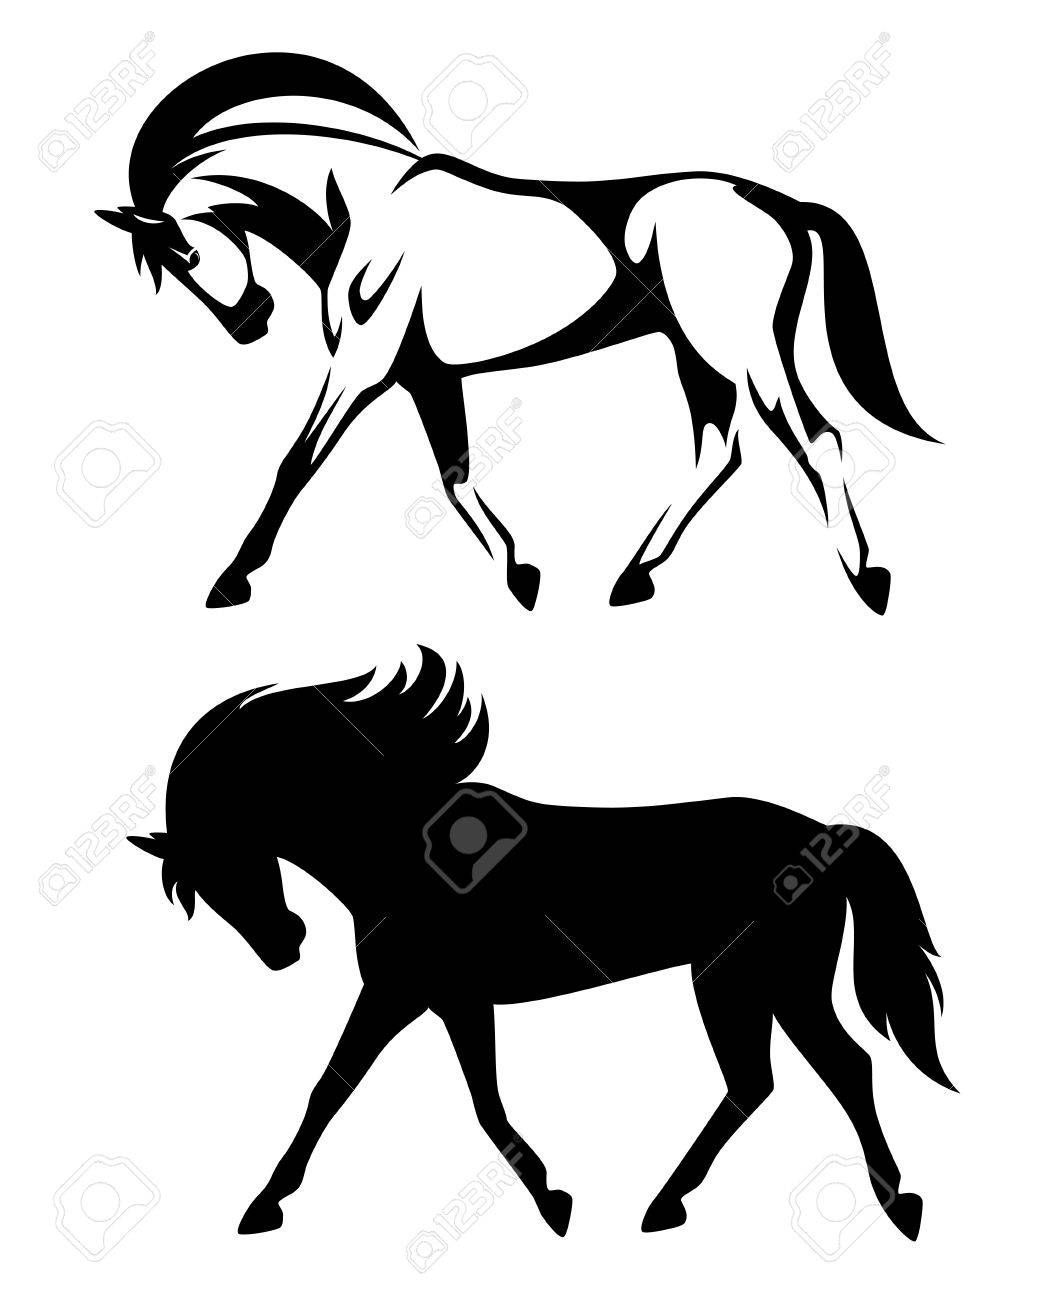 Running Horse Black And White Design Side View Outline And Royalty Free Cliparts Vectors And Stock Illustration Image 59929499